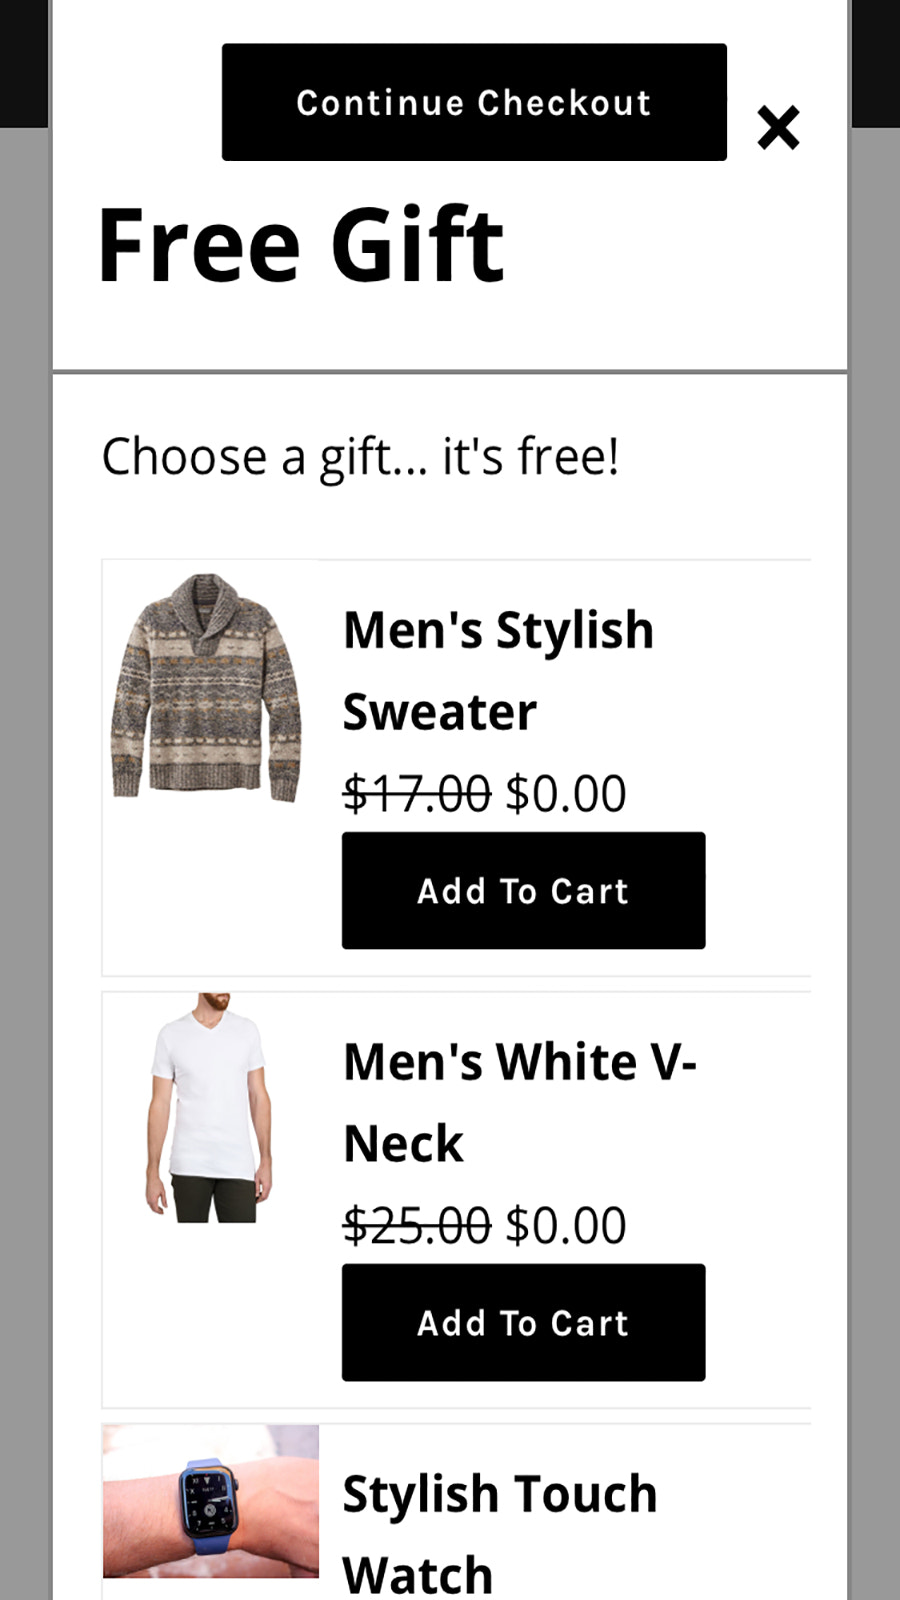 Add product(s) to cart, go to checkout and the app will appear.